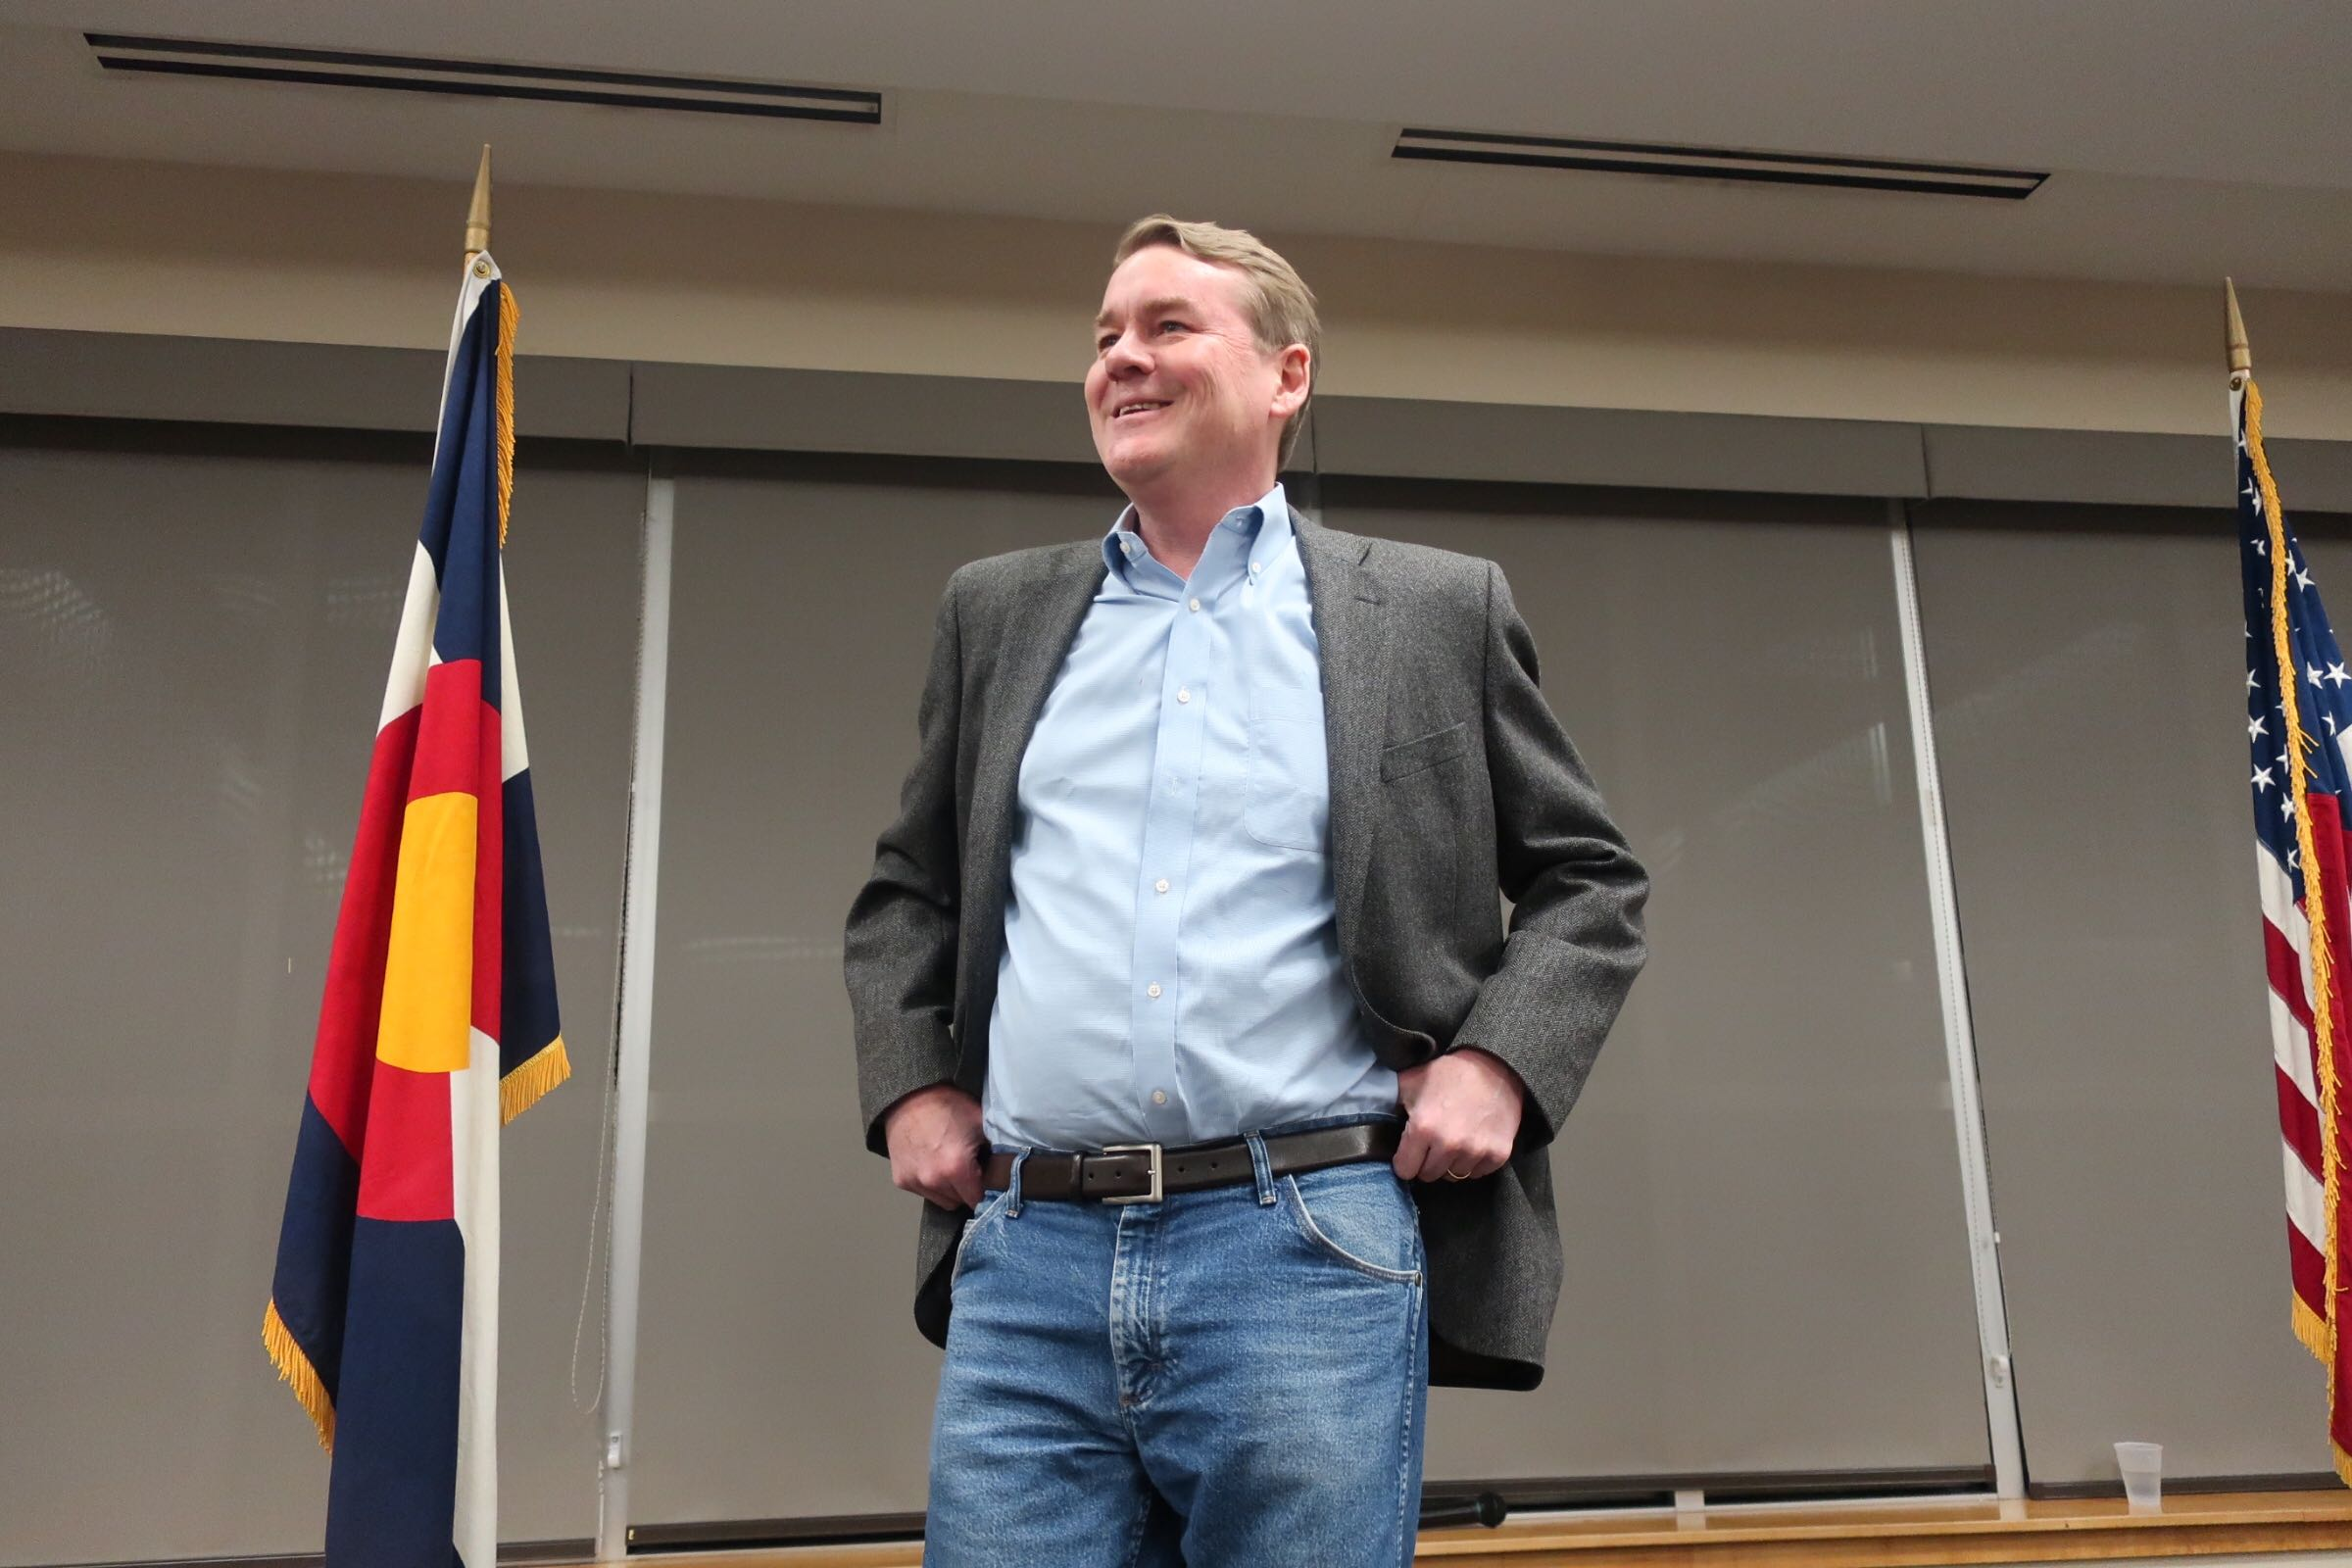 Sen. Michael Bennet, D-Colo., speaks at a town hall in Littleton on Feb. 18, 2020.